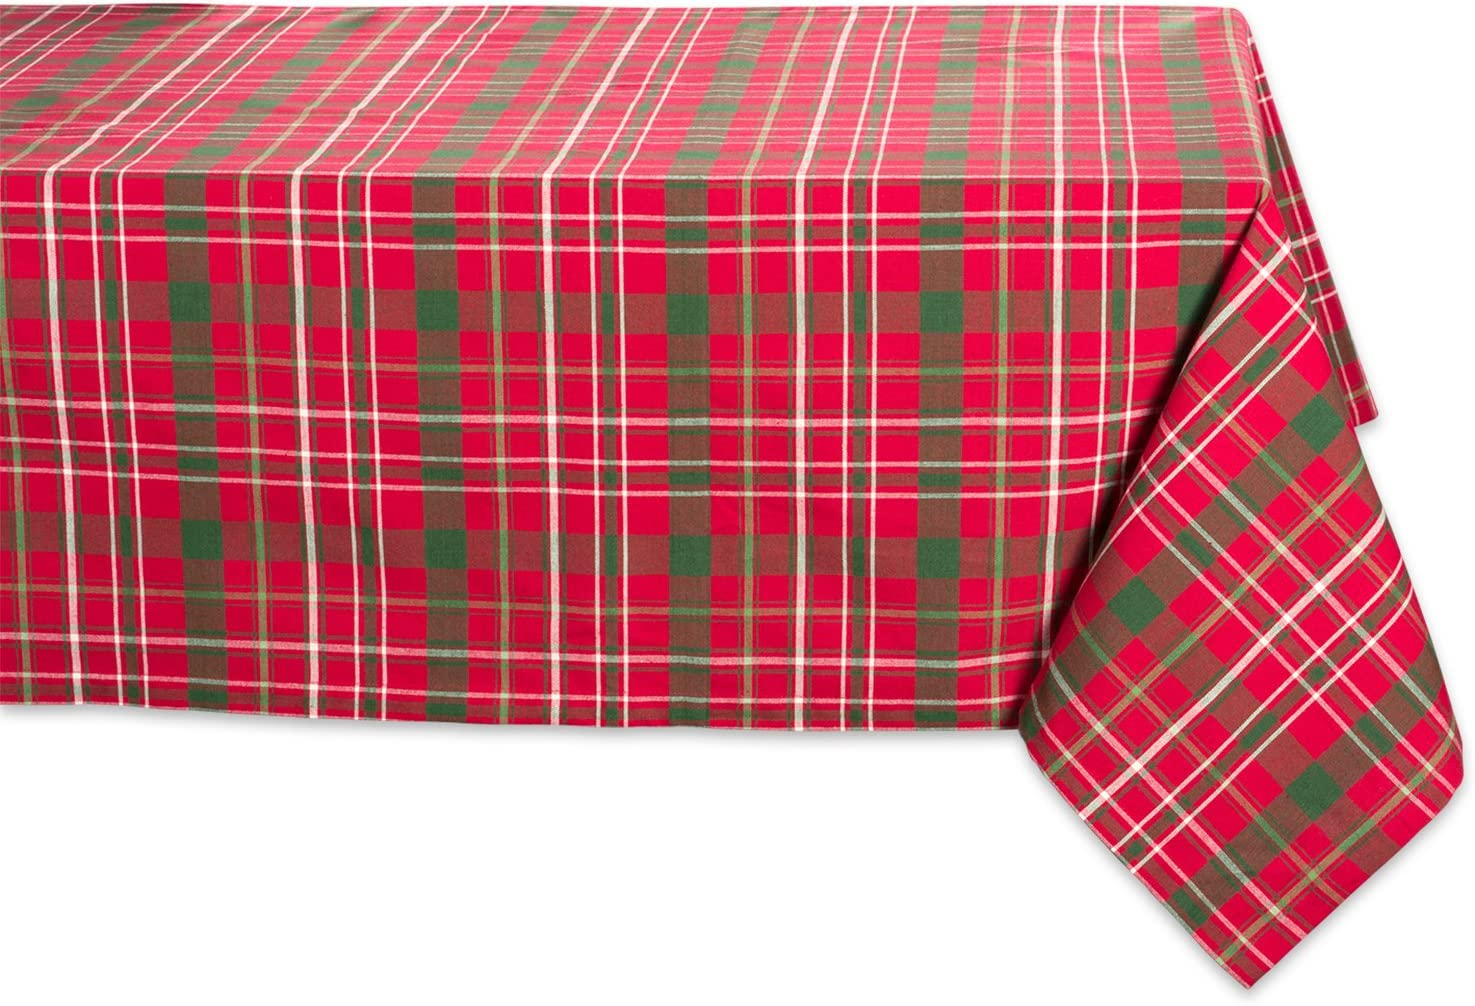 Tartan Holly Plaid Square Tablecloth 100 Cotton With 1 2 Hem For Holiday Family Gatherings Christmas Dinner 60x120 Seats 10 To 12 Home Kitchen